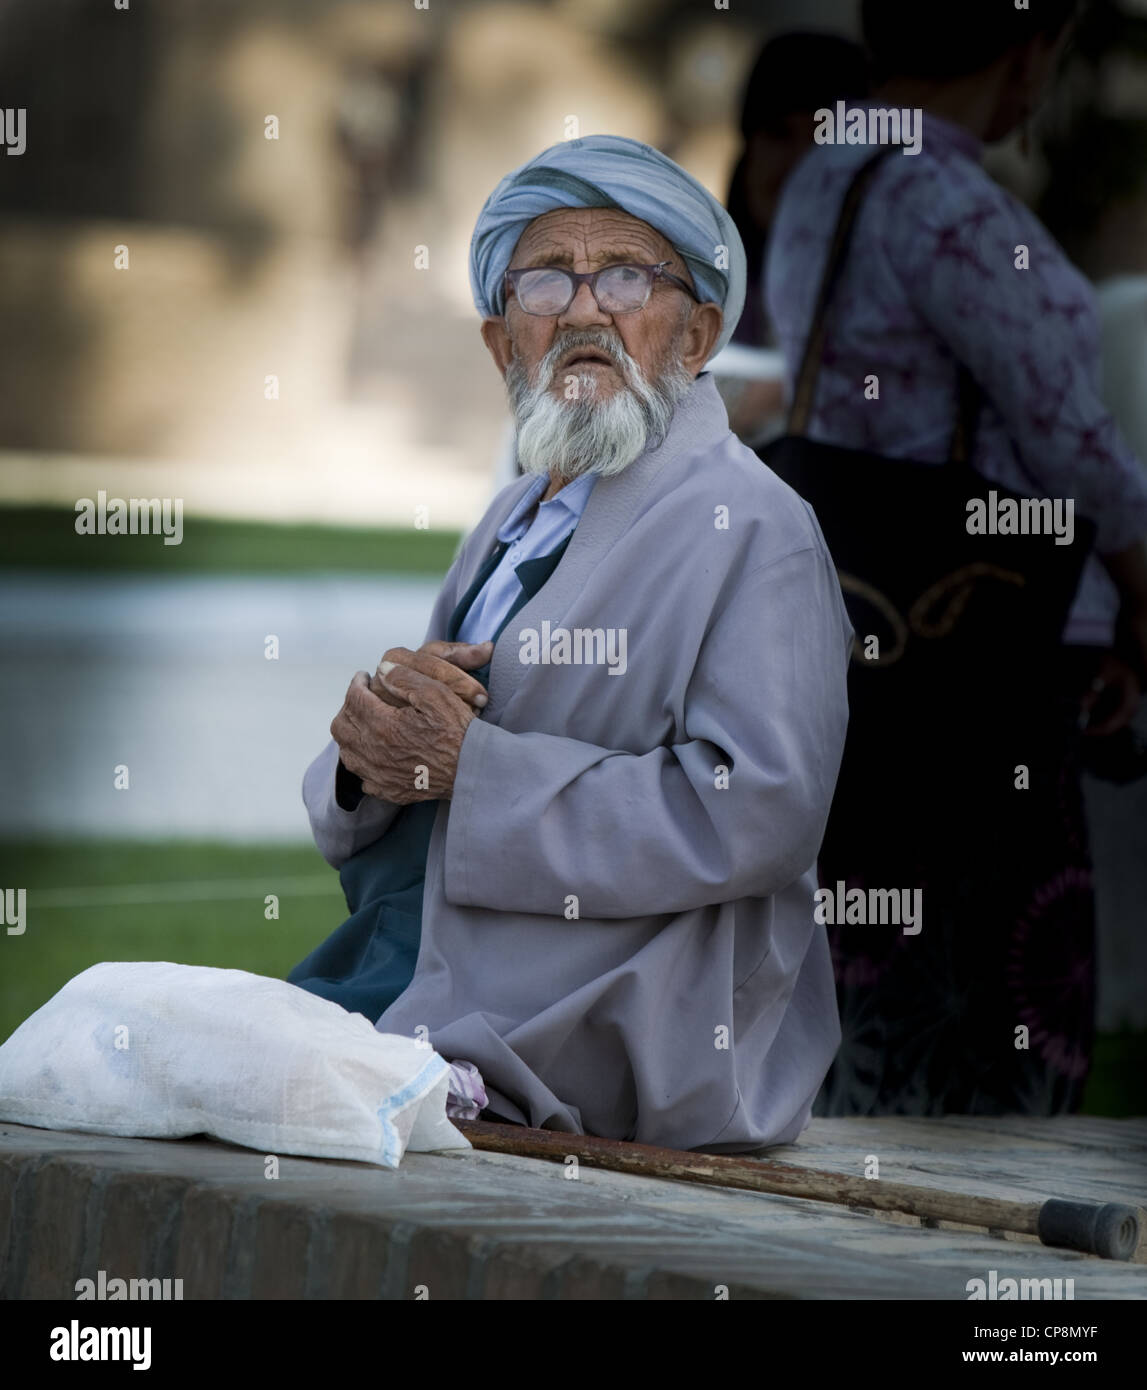 809cc01add7 Wise Old Man Stock Photos   Wise Old Man Stock Images - Alamy